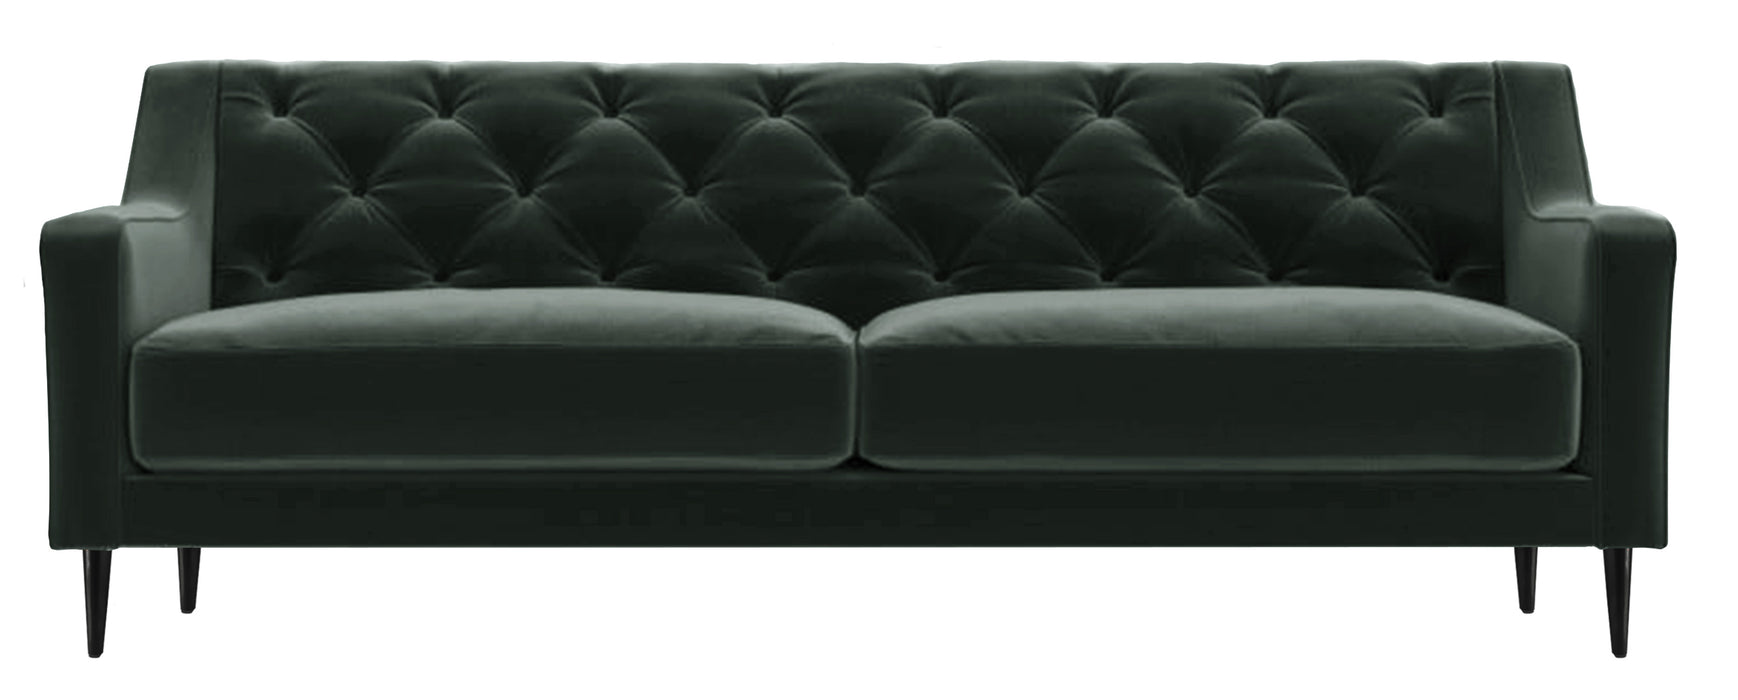 Paris Sofa (2.5 Seater)